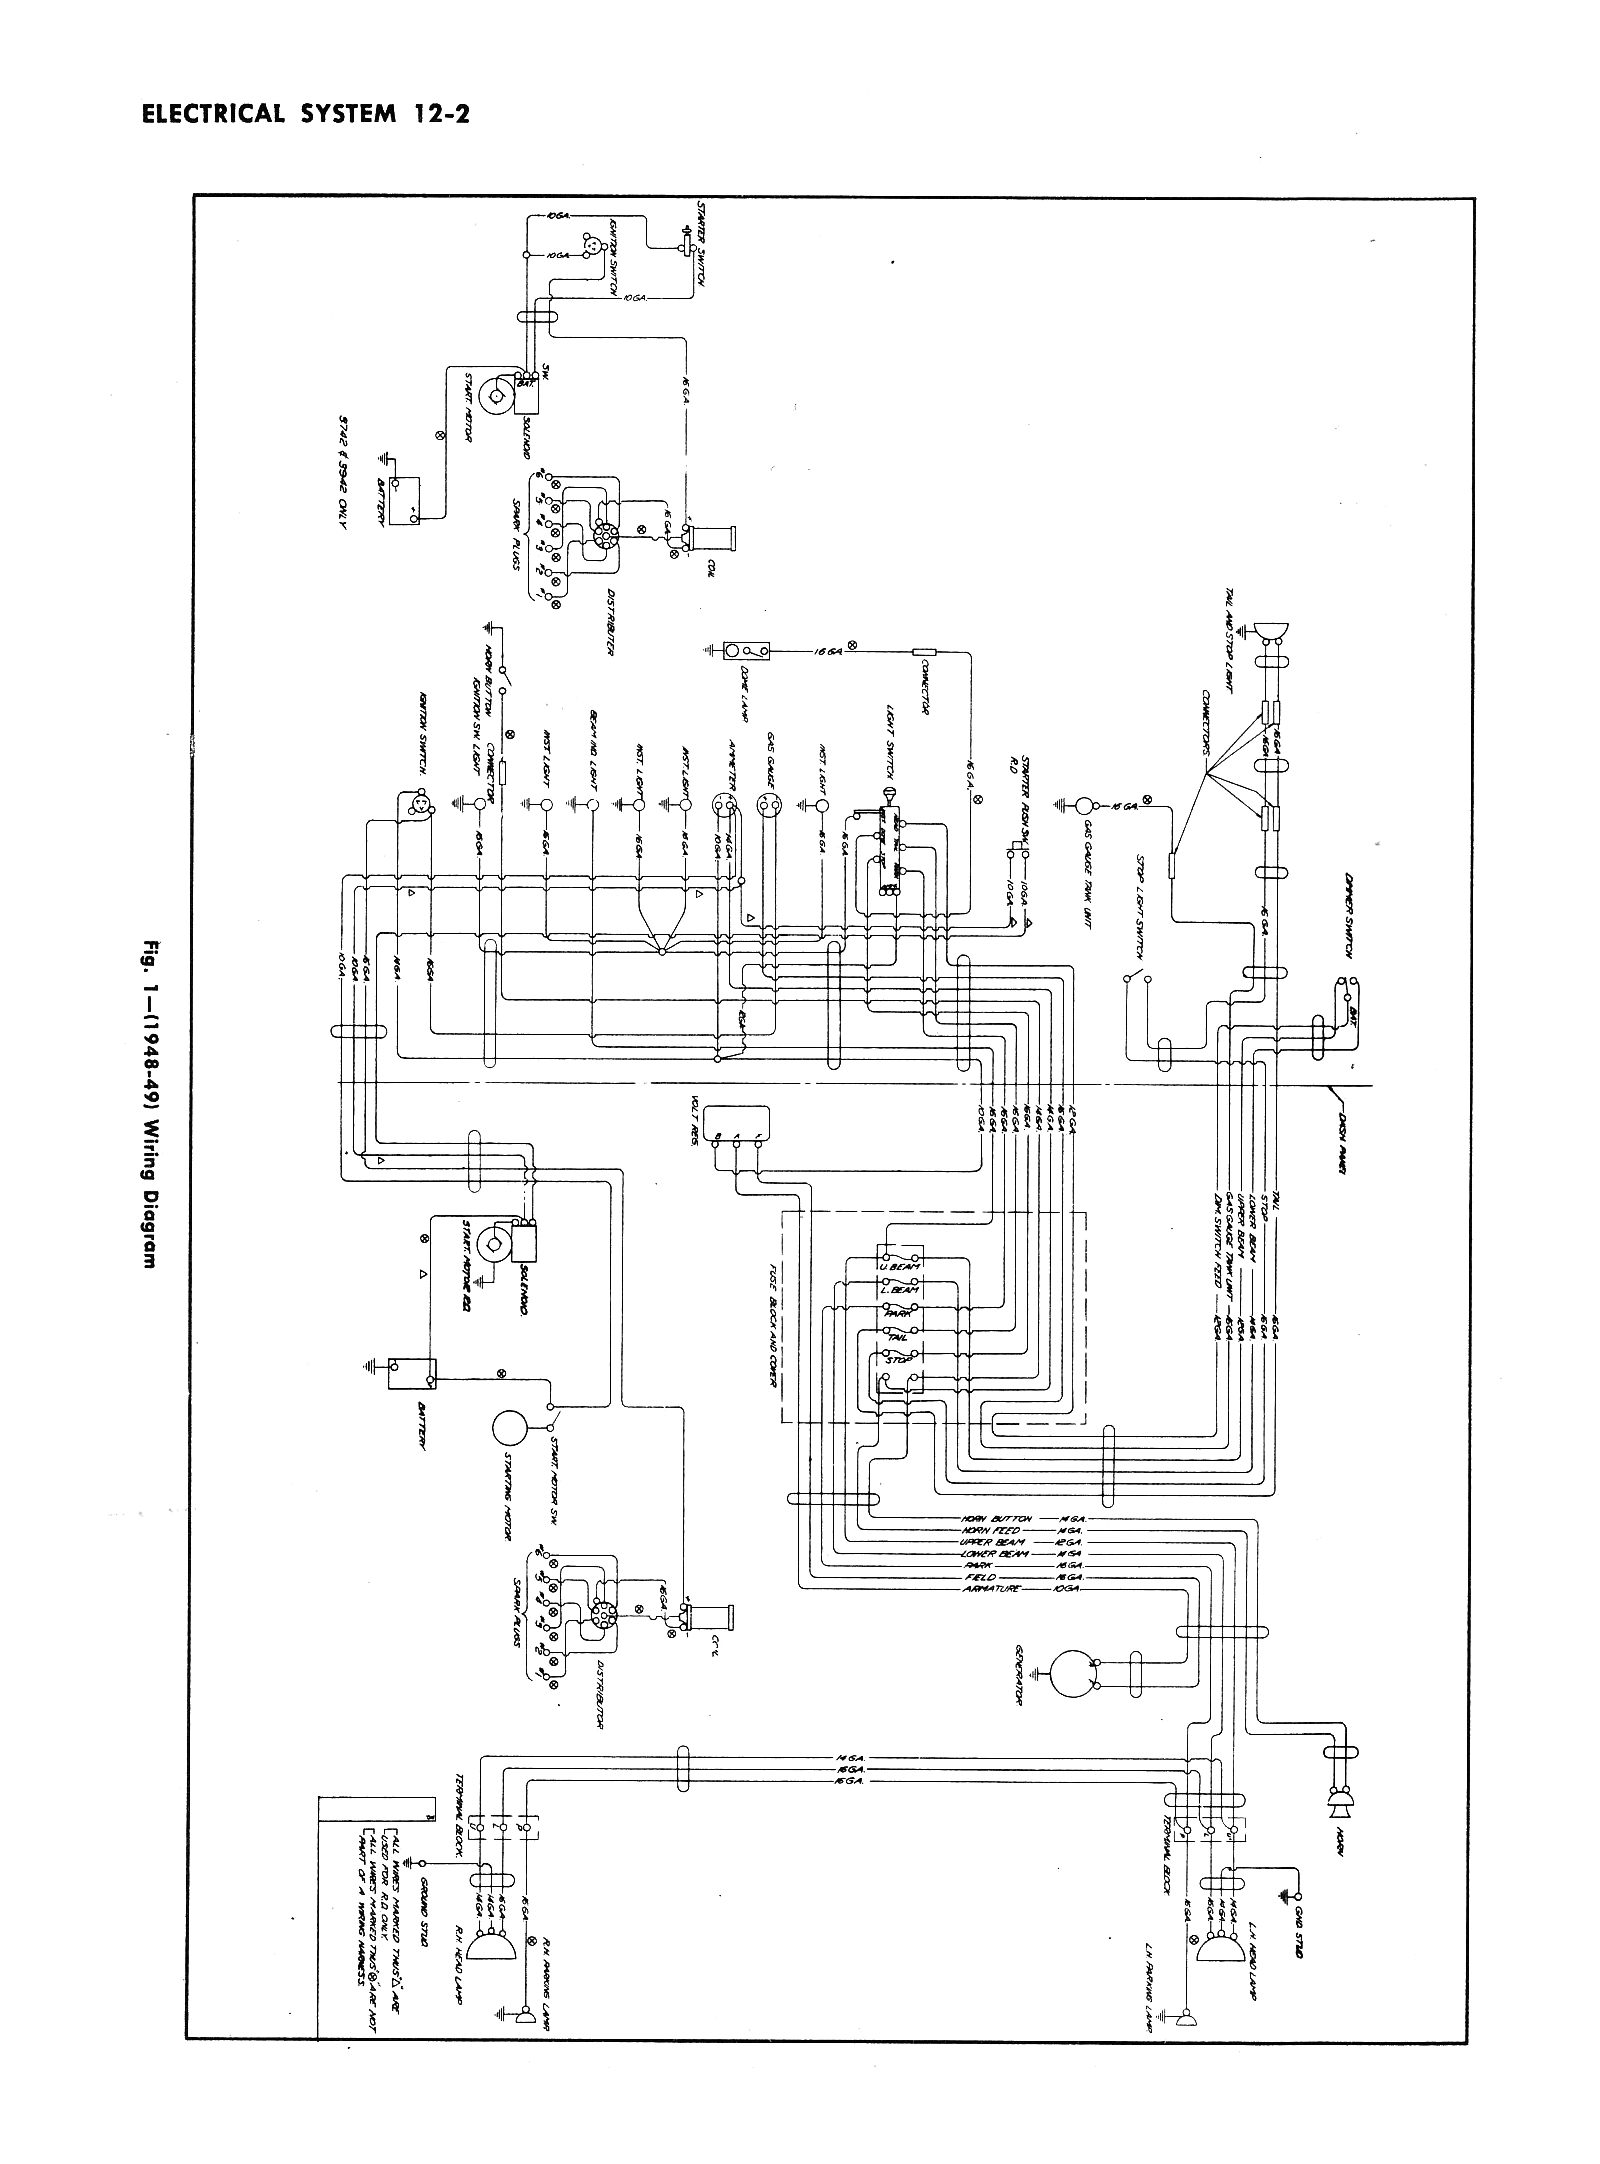 1952 Chevy Truck Wiring Diagram on 1949 Cadillac Wiring Diagram